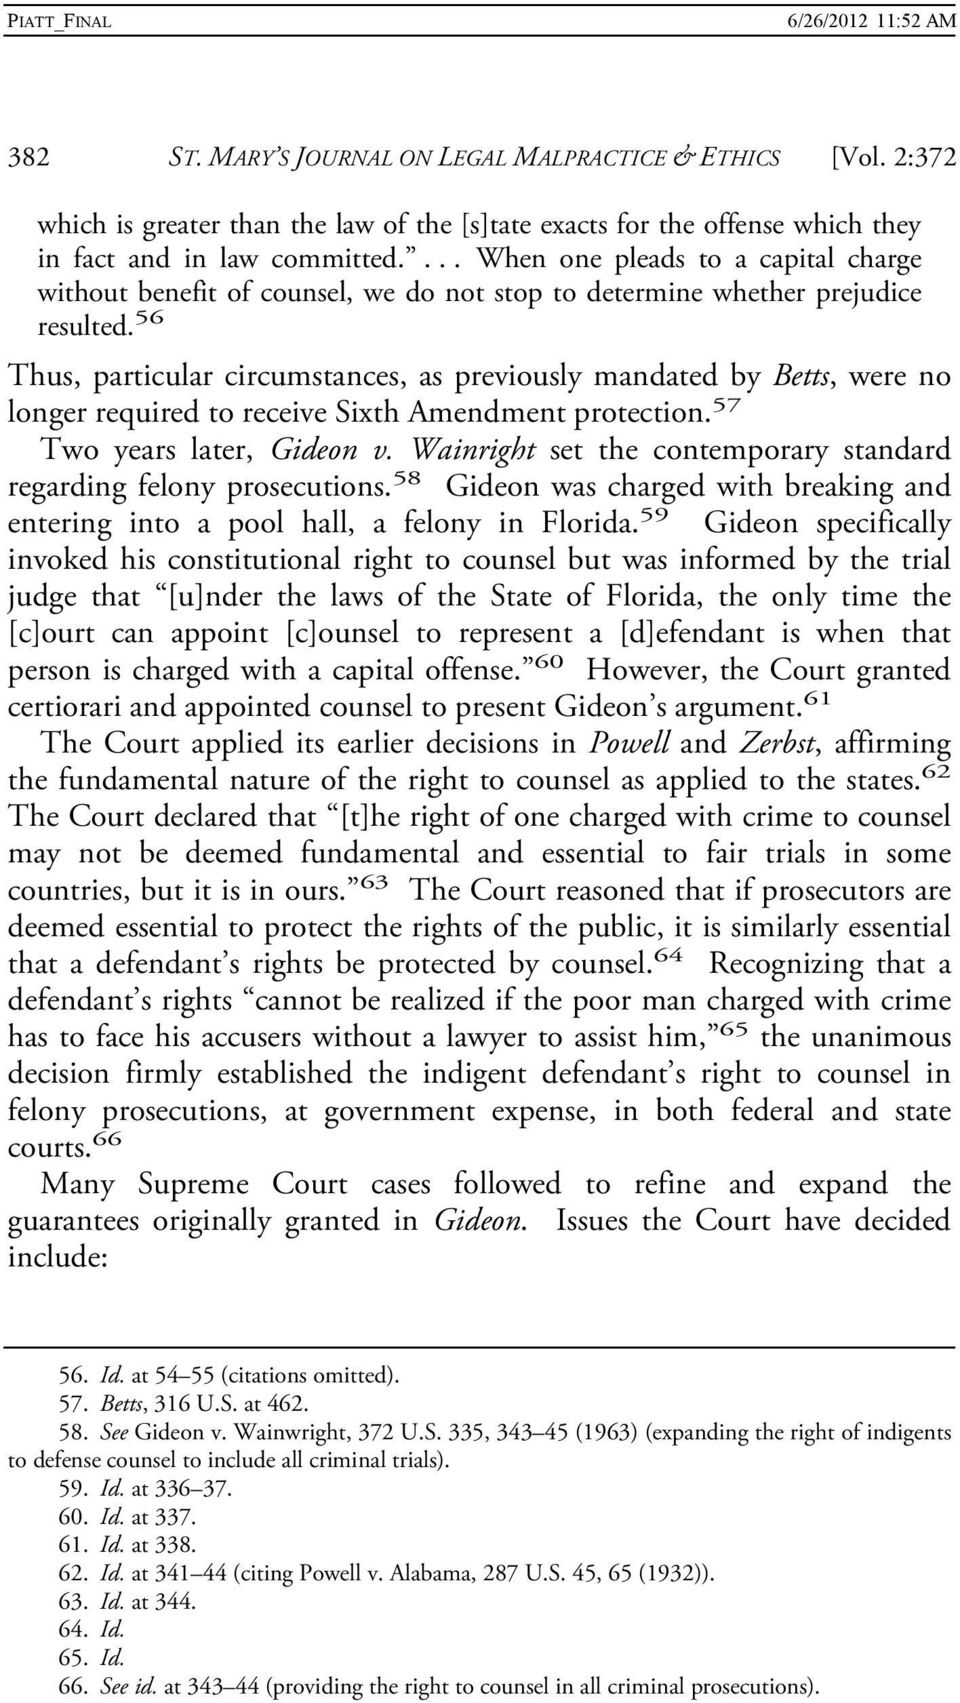 56 Thus, particular circumstances, as previously mandated by Betts, were no longer required to receive Sixth Amendment protection. 57 Two years later, Gideon v.